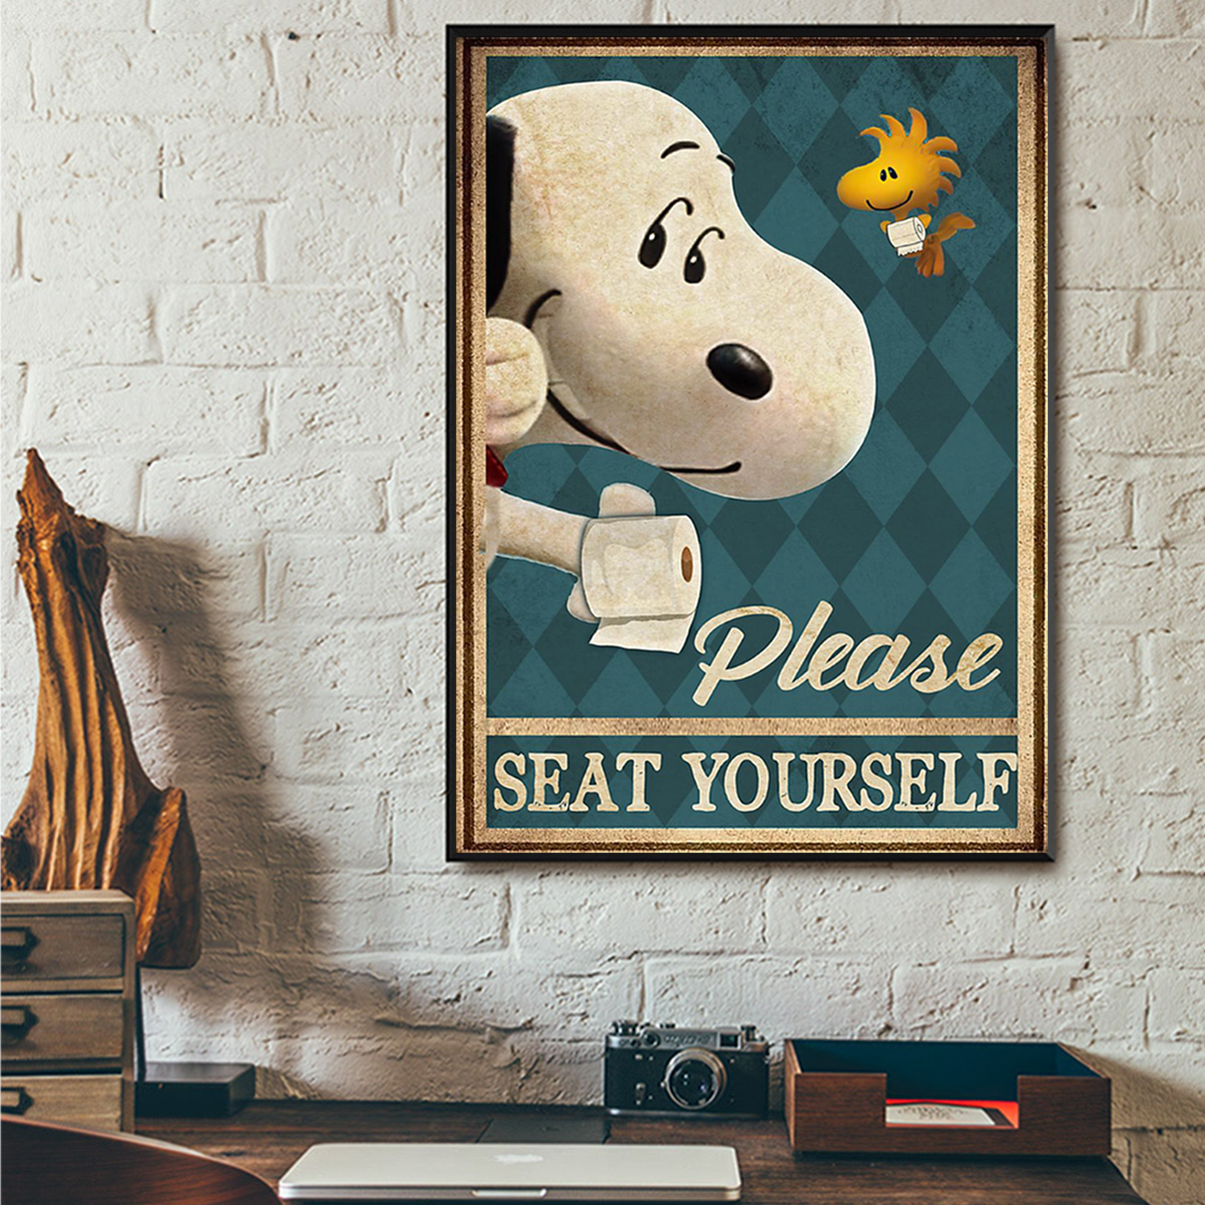 Snoopy please seat yourself poster A1